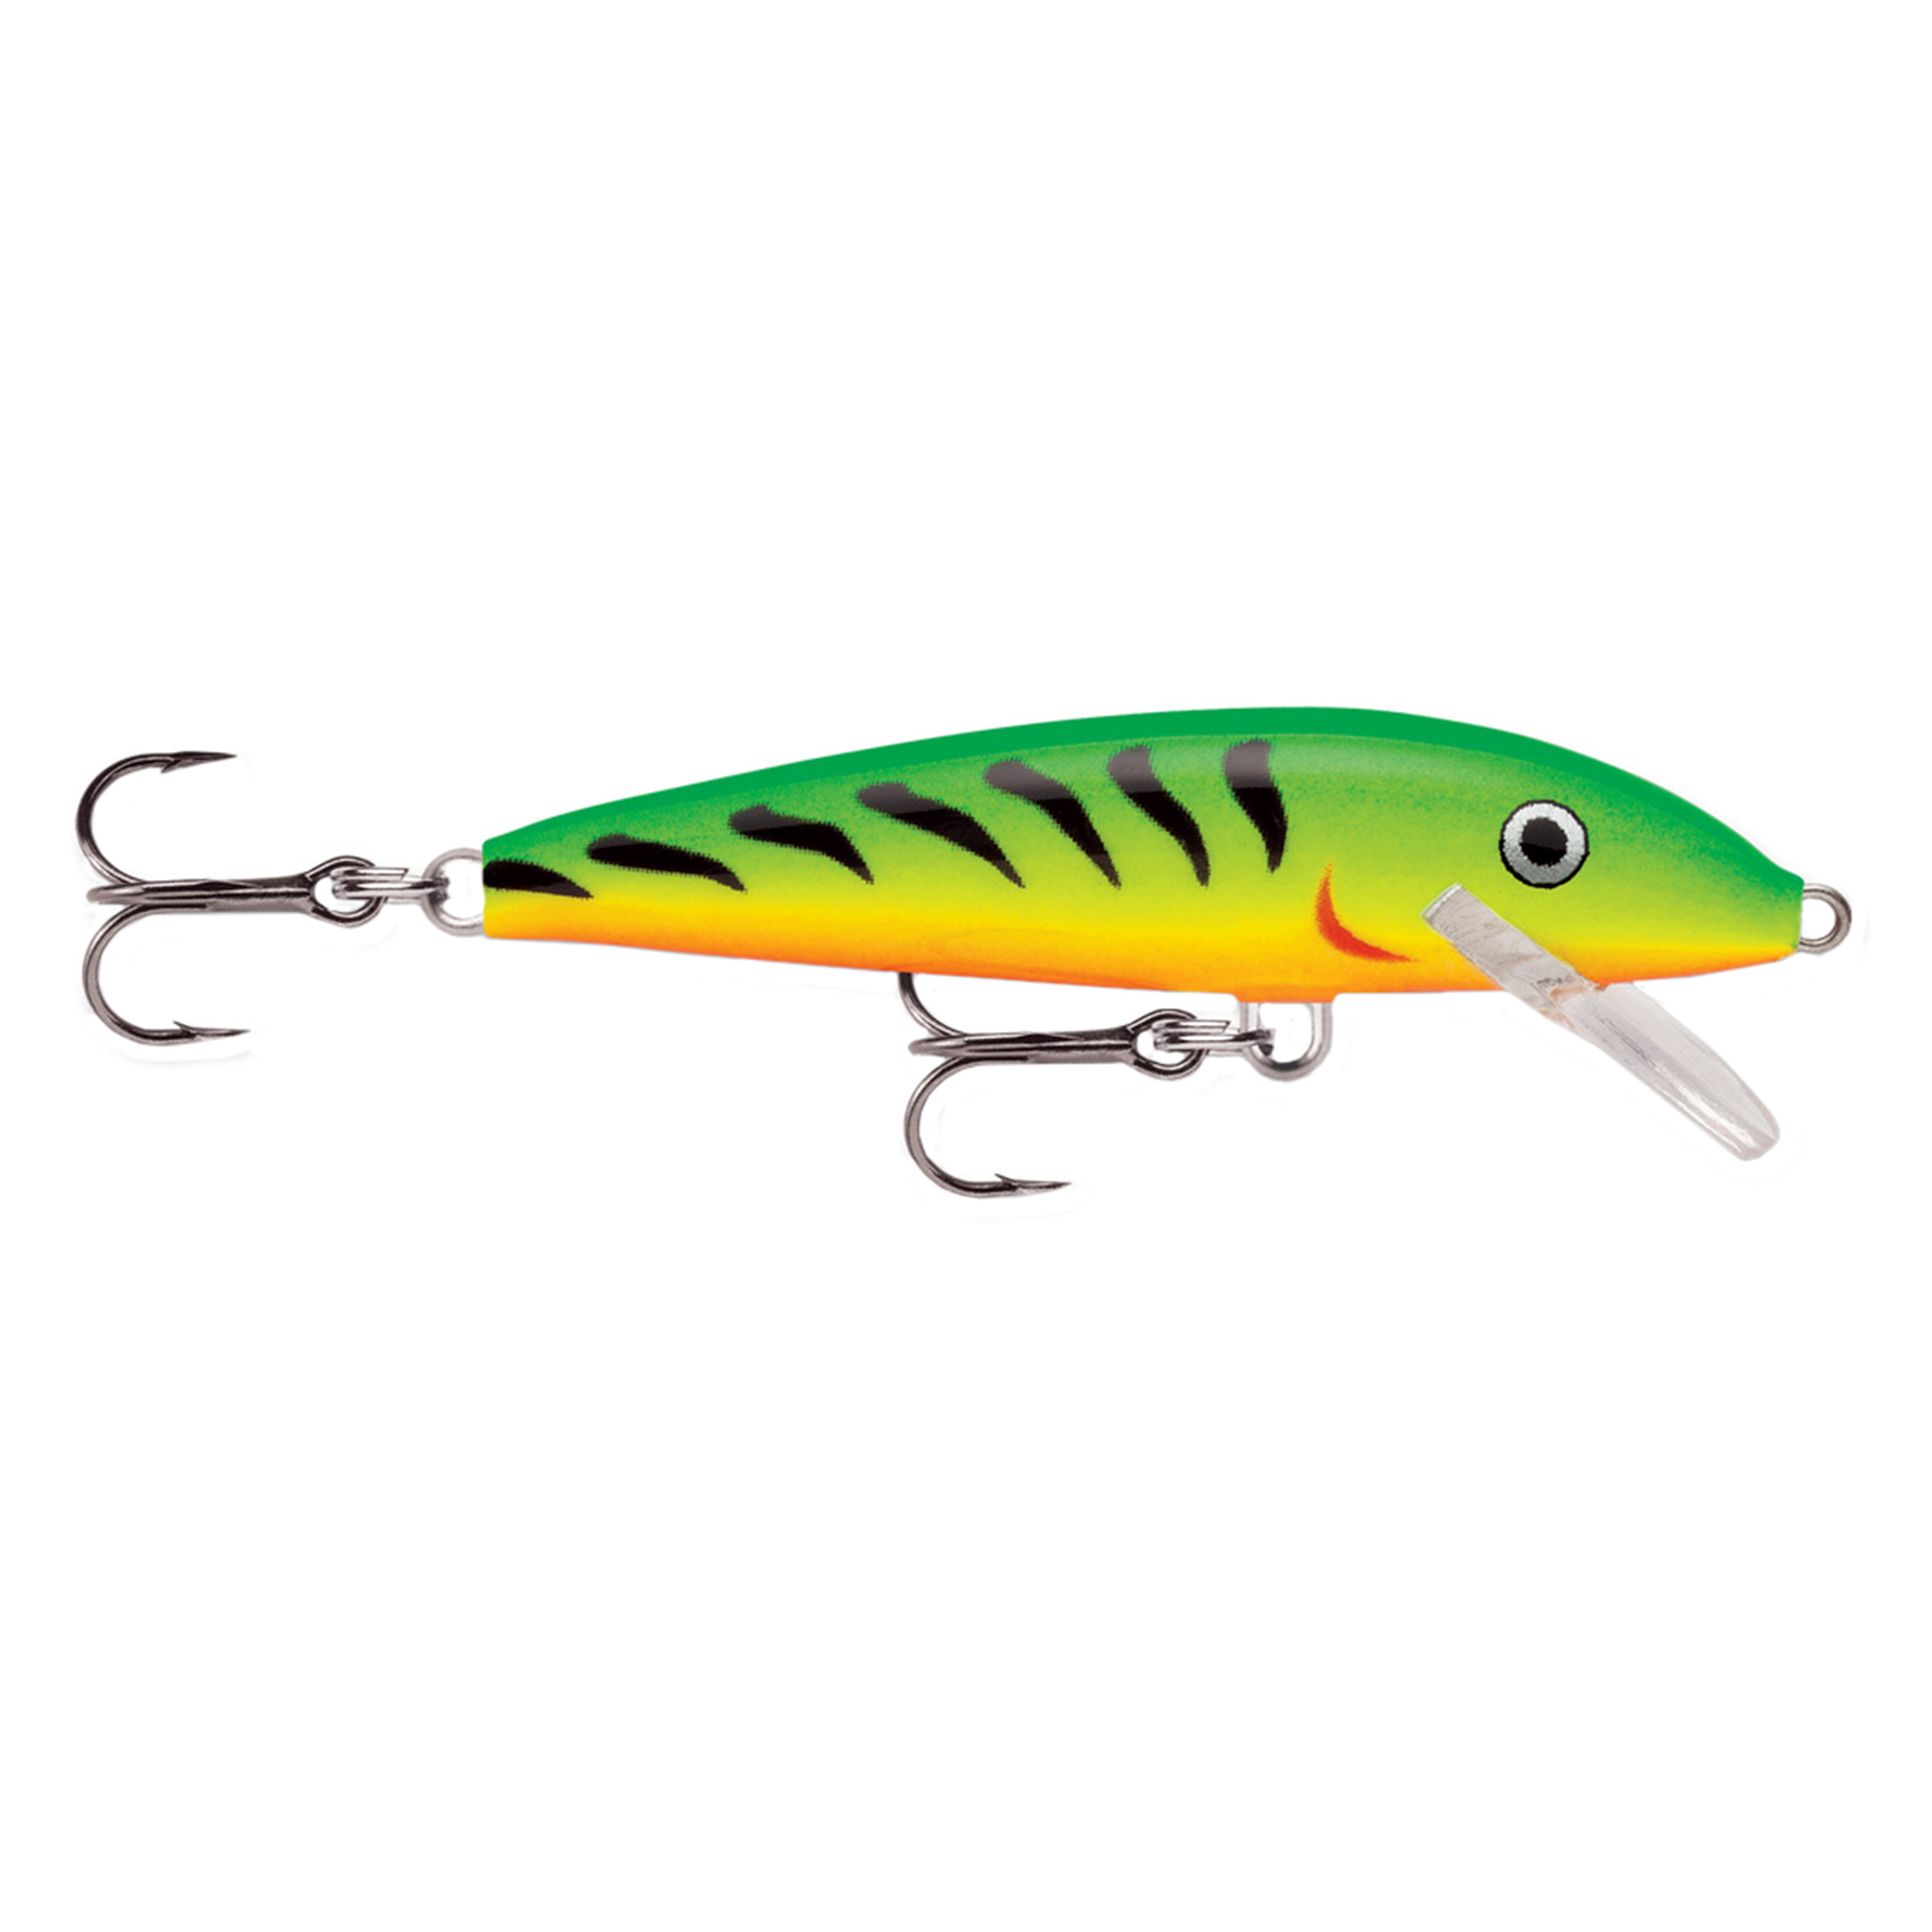 "Rapala Original Floating Lure Size 07, 2 3 4"" Length, 3'-5' Depth, 2 Number 7 Treble Hooks, Fire Tiger, Per 1 by Rapala"